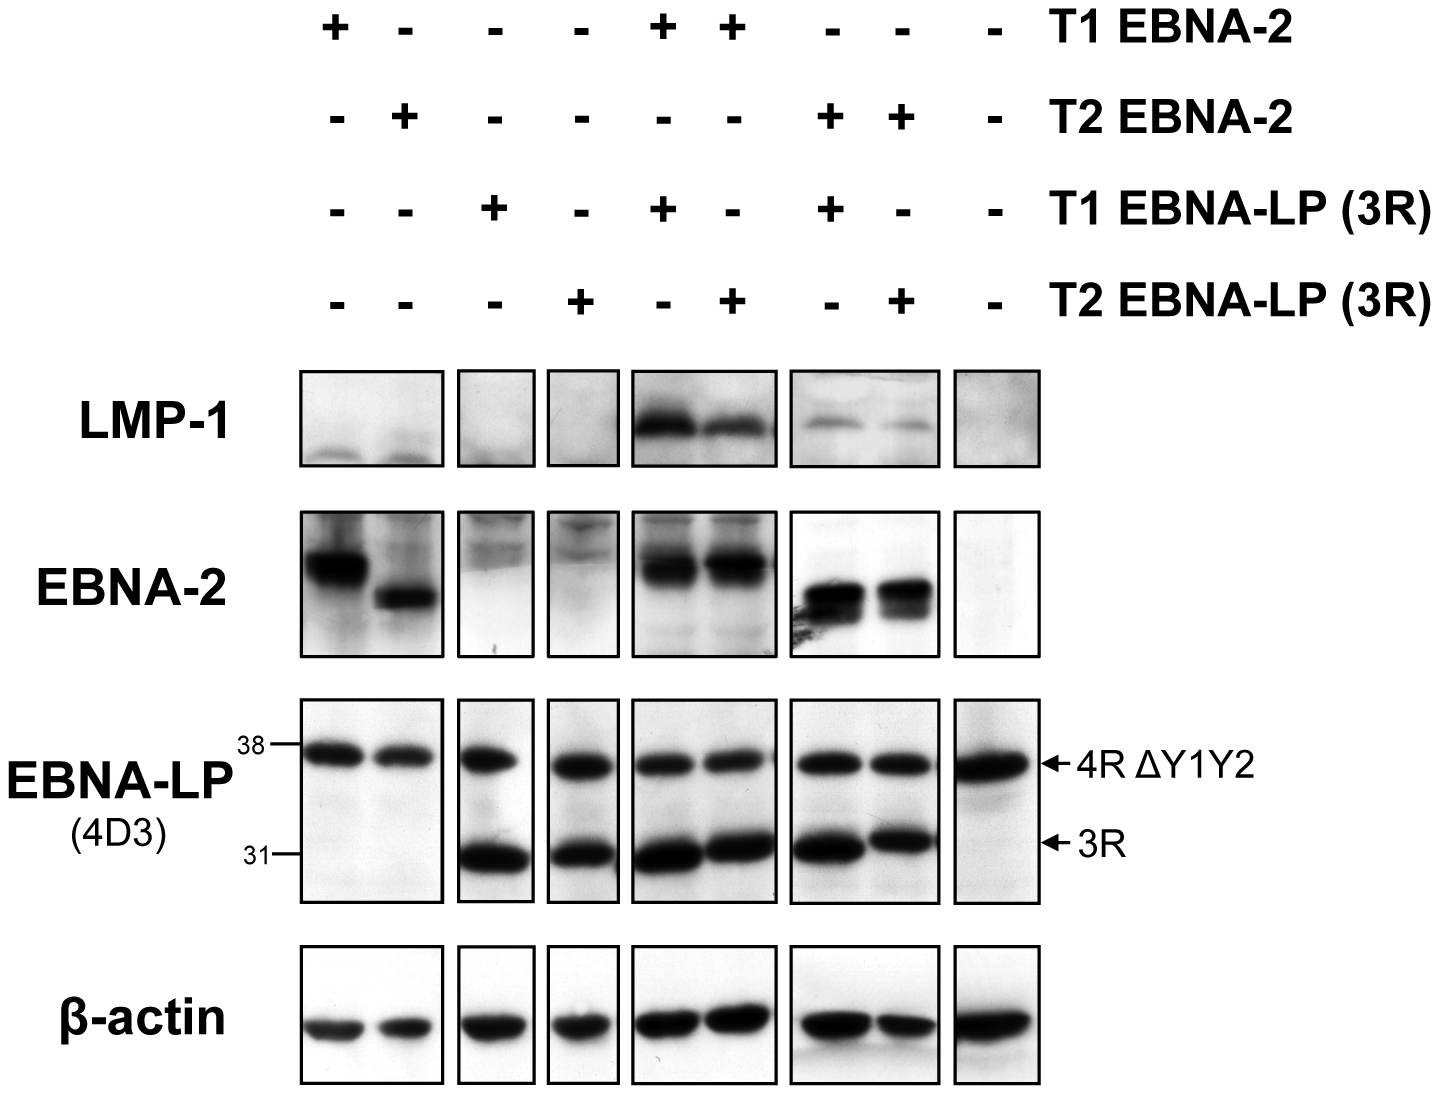 In a transient transfection assay in Daudi cells, the weaker induction of LMP-1 by type 2 EBNA-2, compared to the type 1 EBNA-2, is not affected by the EBNA-LP type.